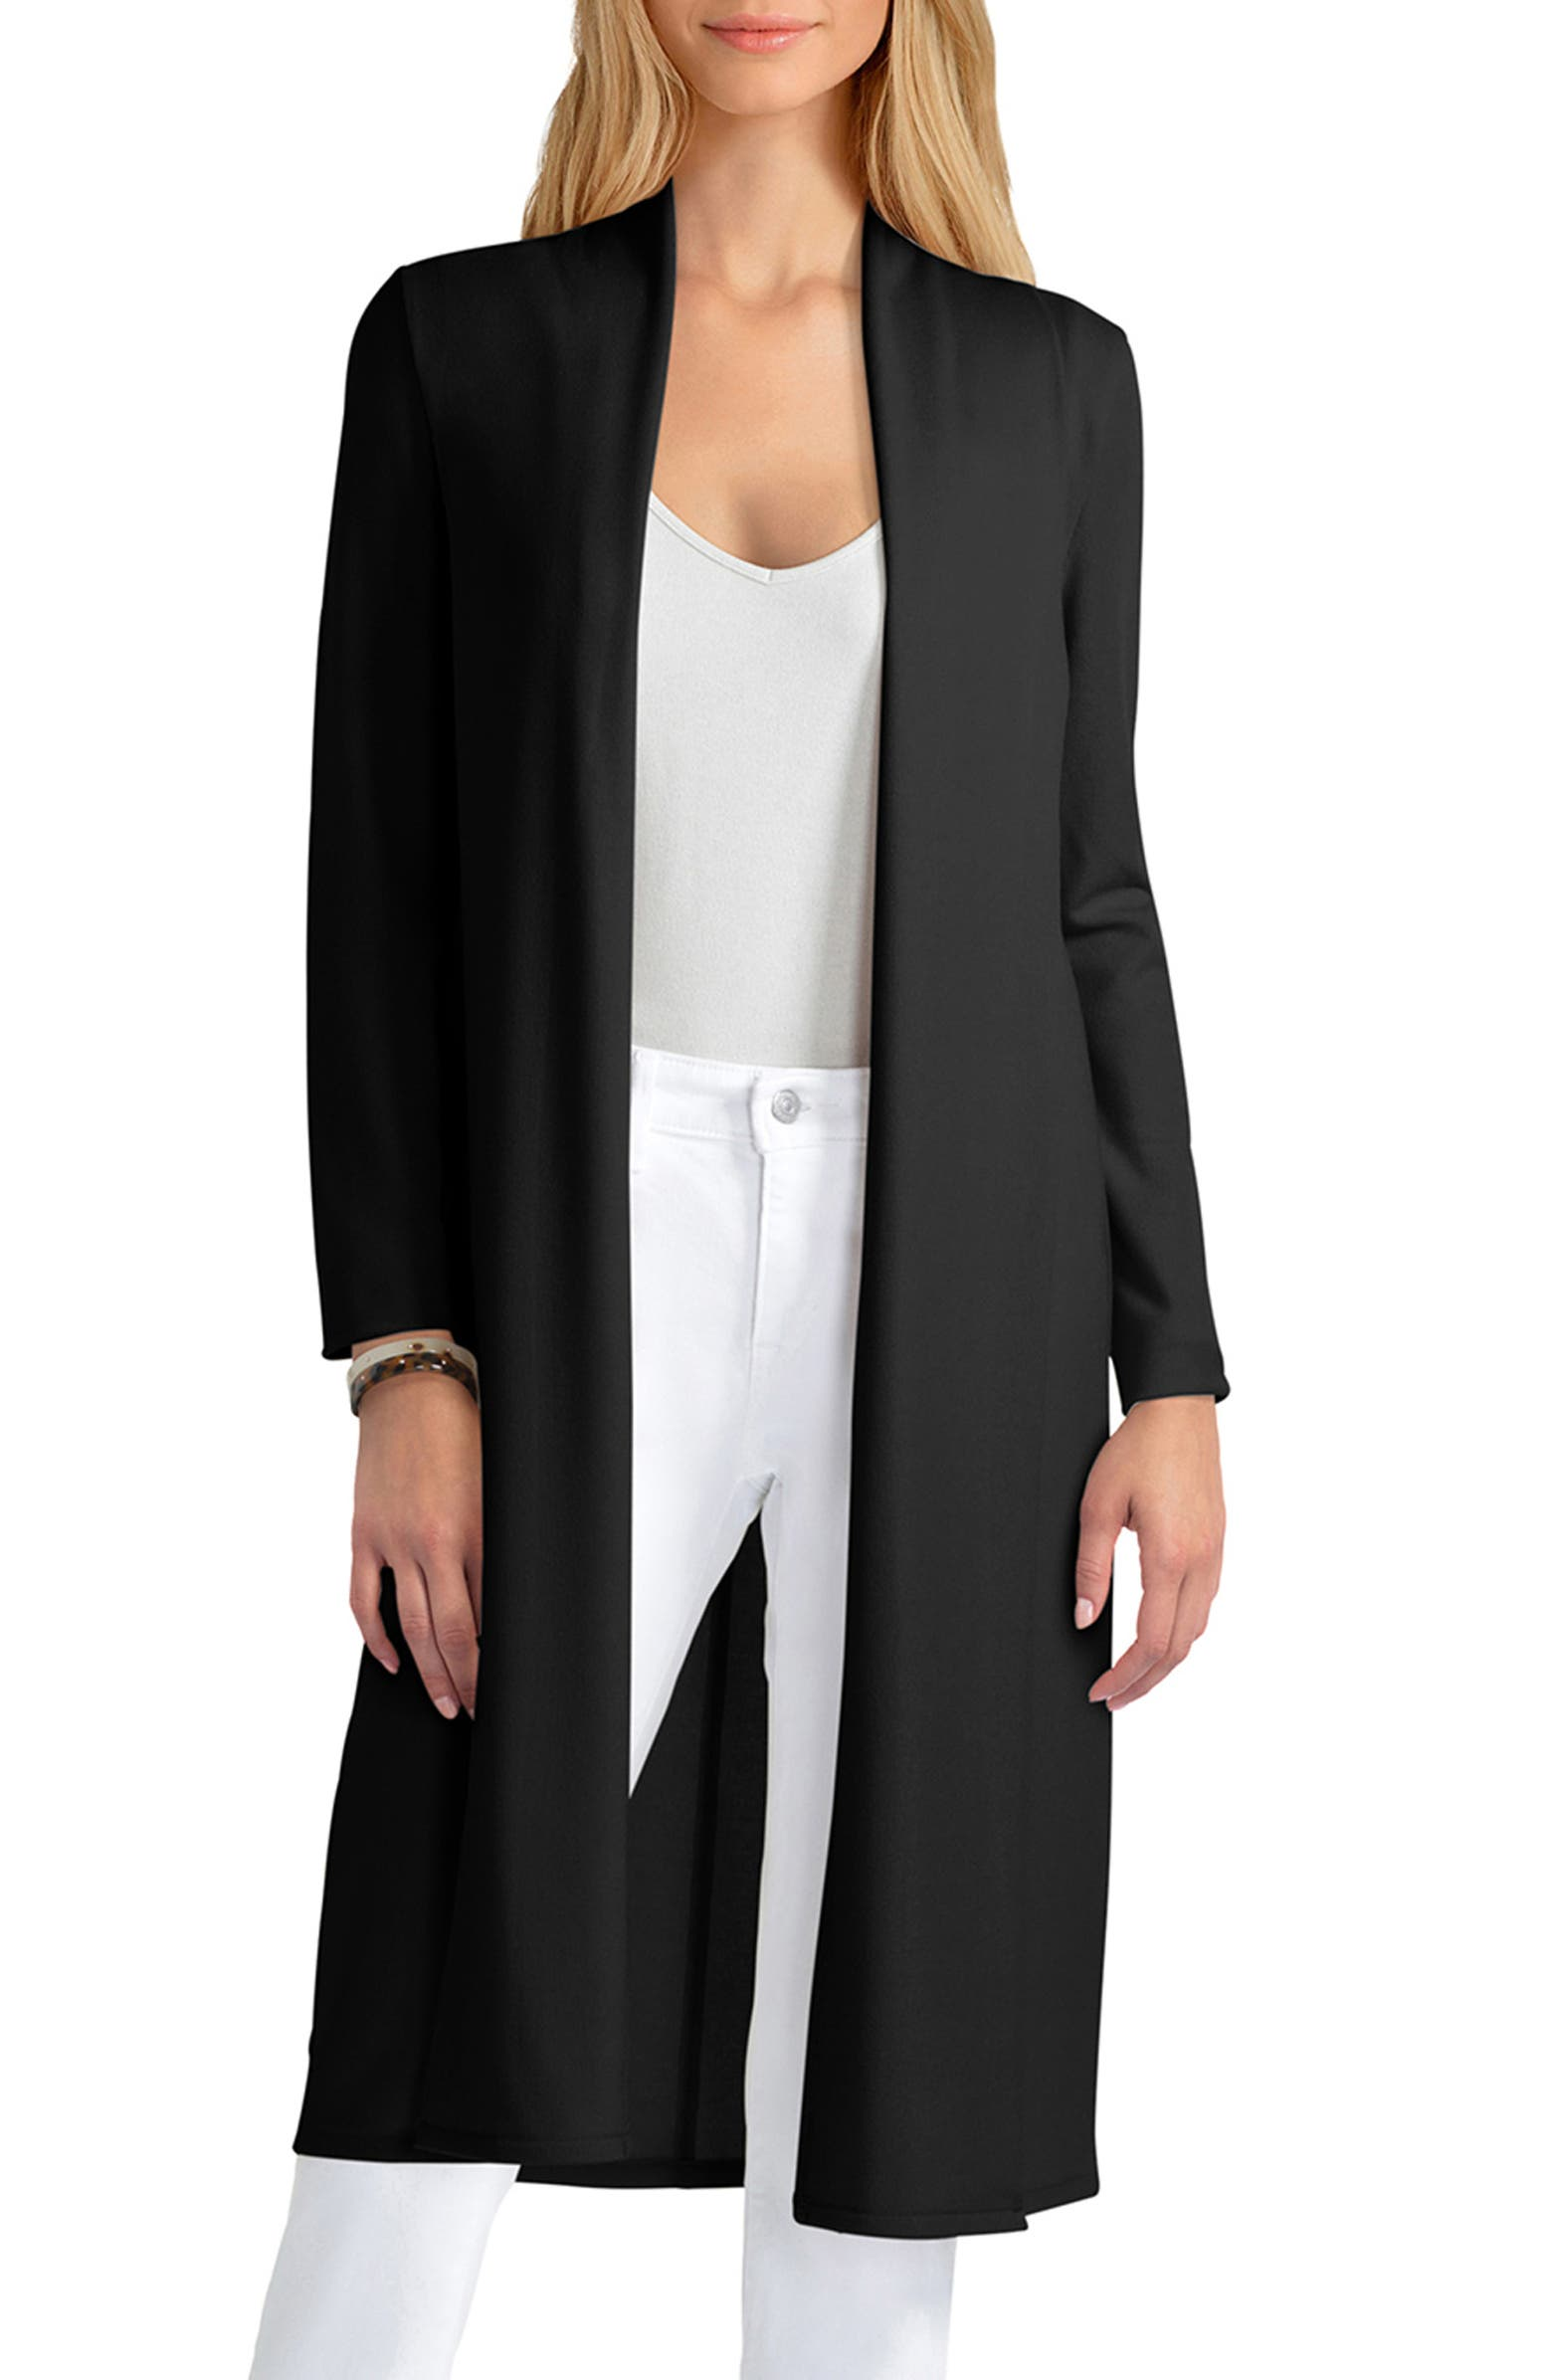 Nordstrom: Long Sleeve Open Front Knit Cardigan $29.97 (61% off)